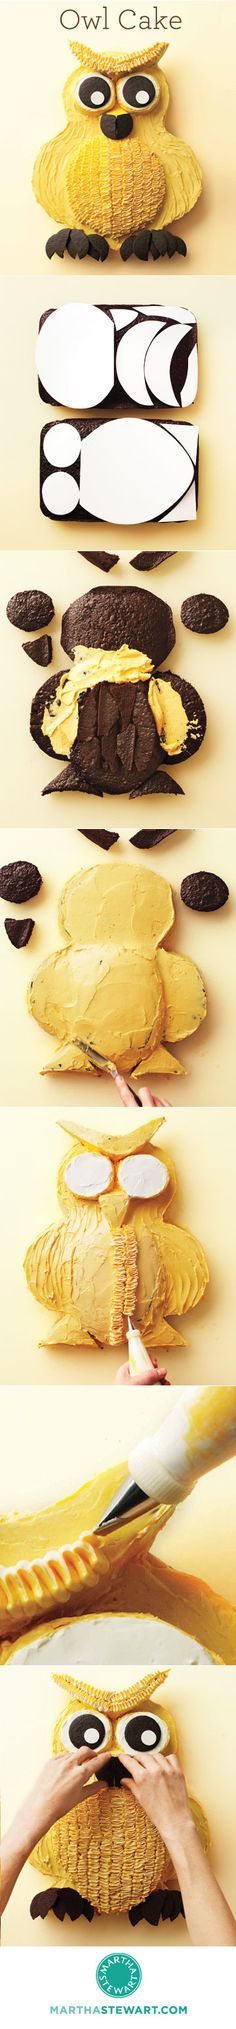 Owl Cake How-To-- sooo whoo is making me this for my birthday? @Donnamarie Mccabe @Erika Sorvino @Jackie Mower